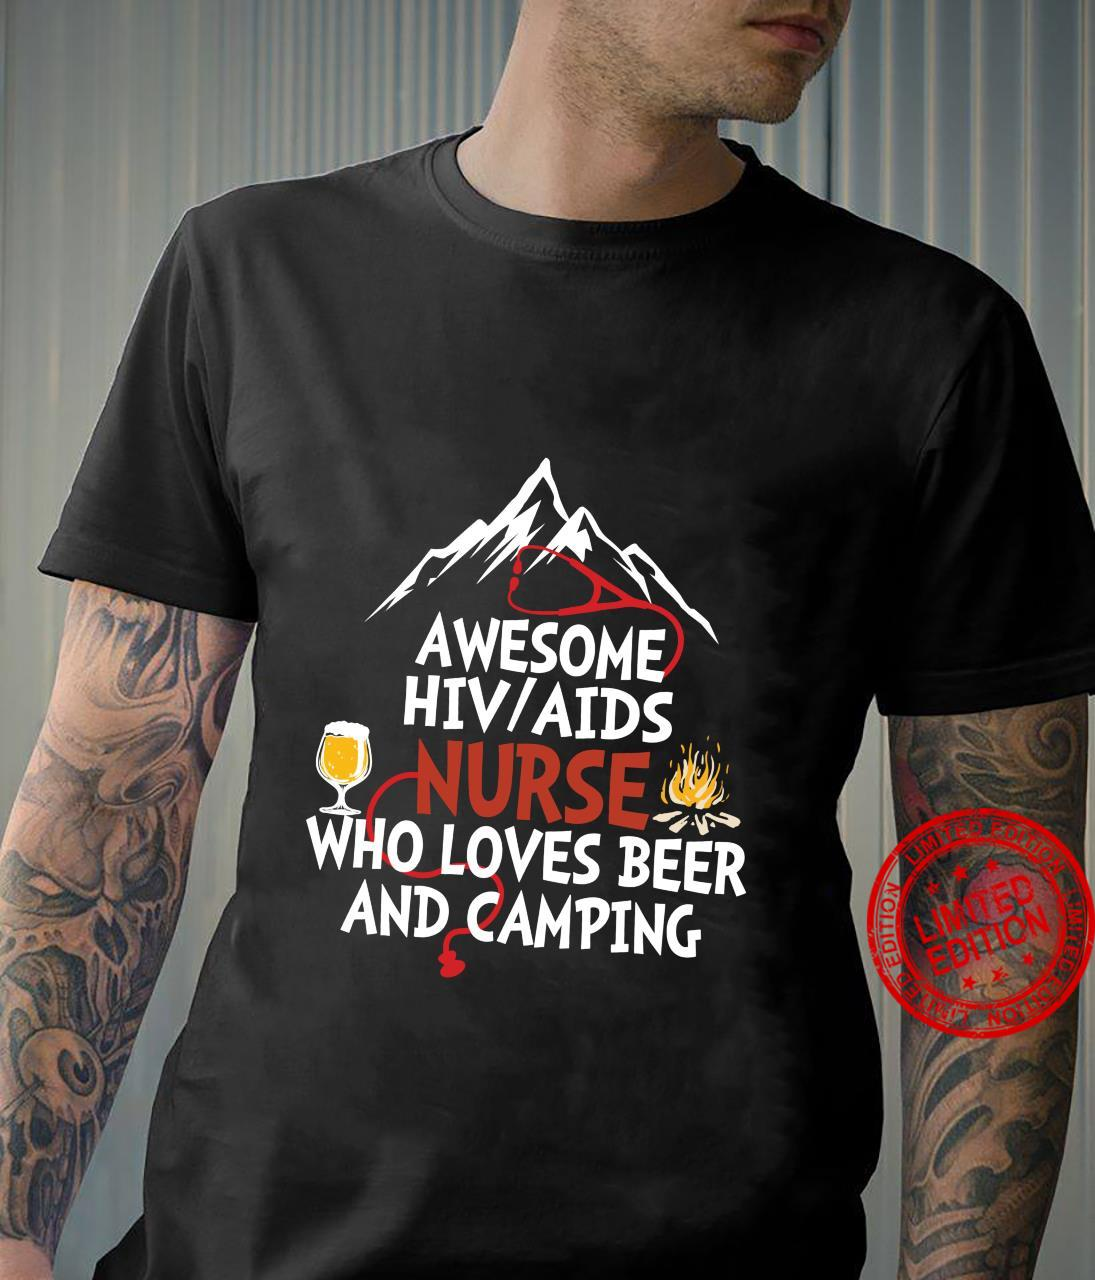 Awesome HIV AIDS Nurse who loves beer and camping Shirt